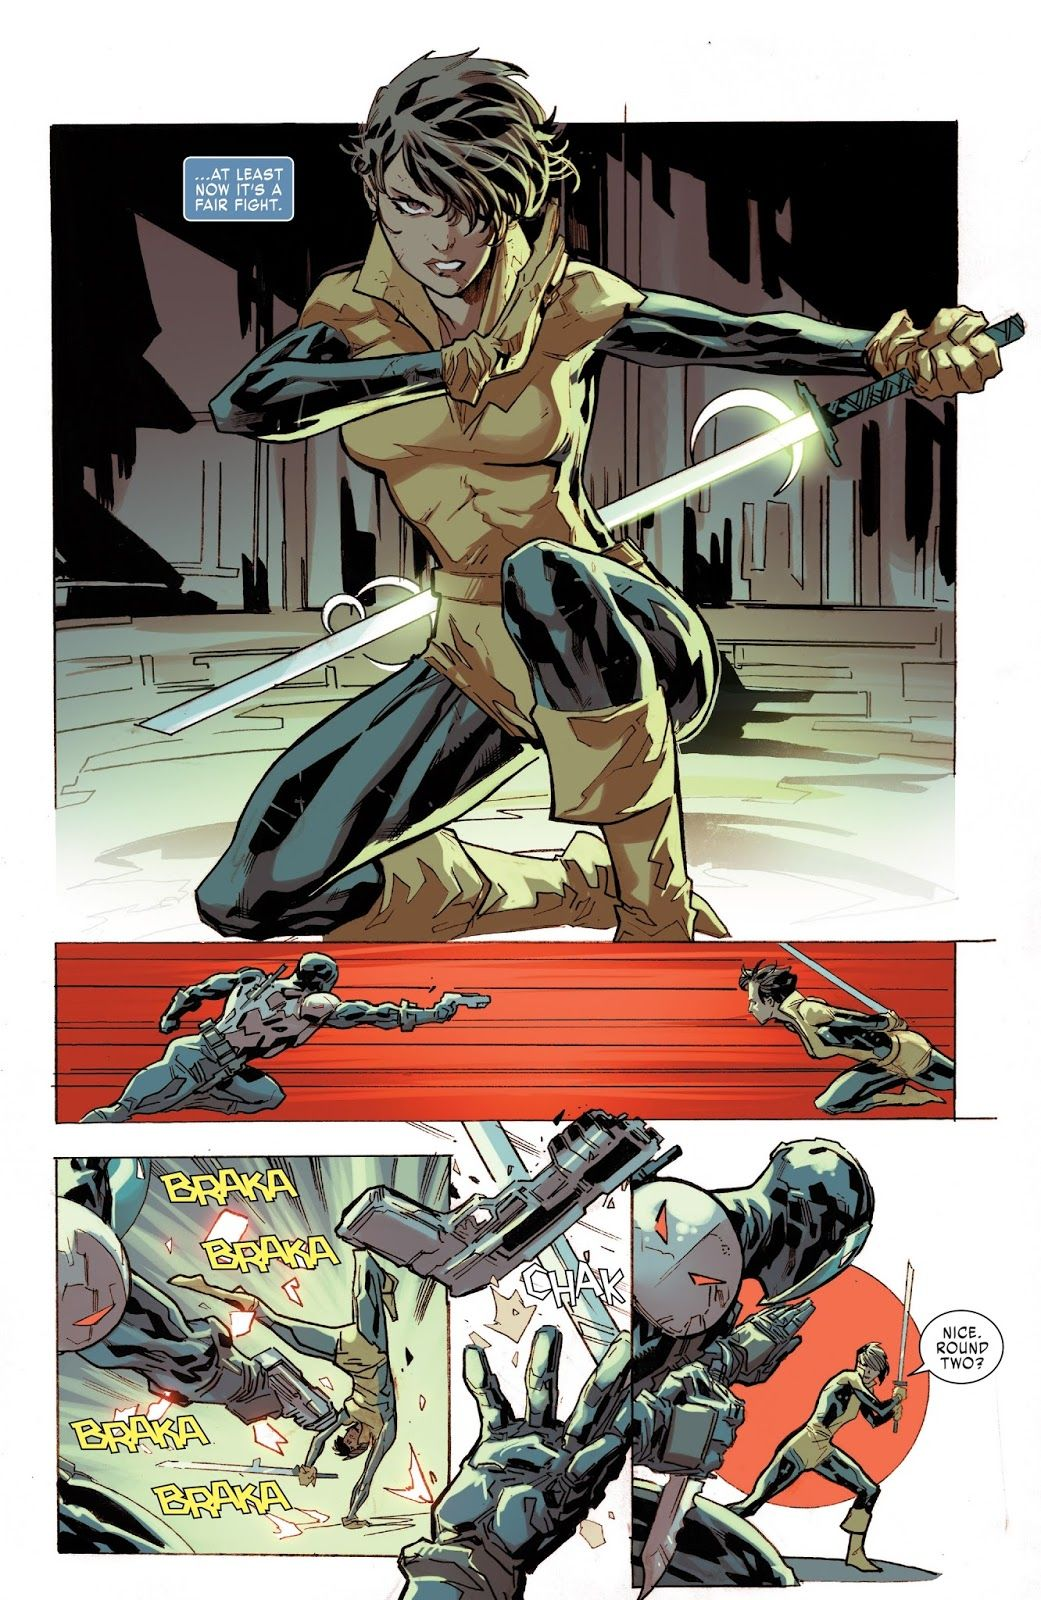 X Men Gold Issue 8 Read X Men Gold Issue 8 Comic Online In High Quality Comic Book Girl Comic Book Pages Comics